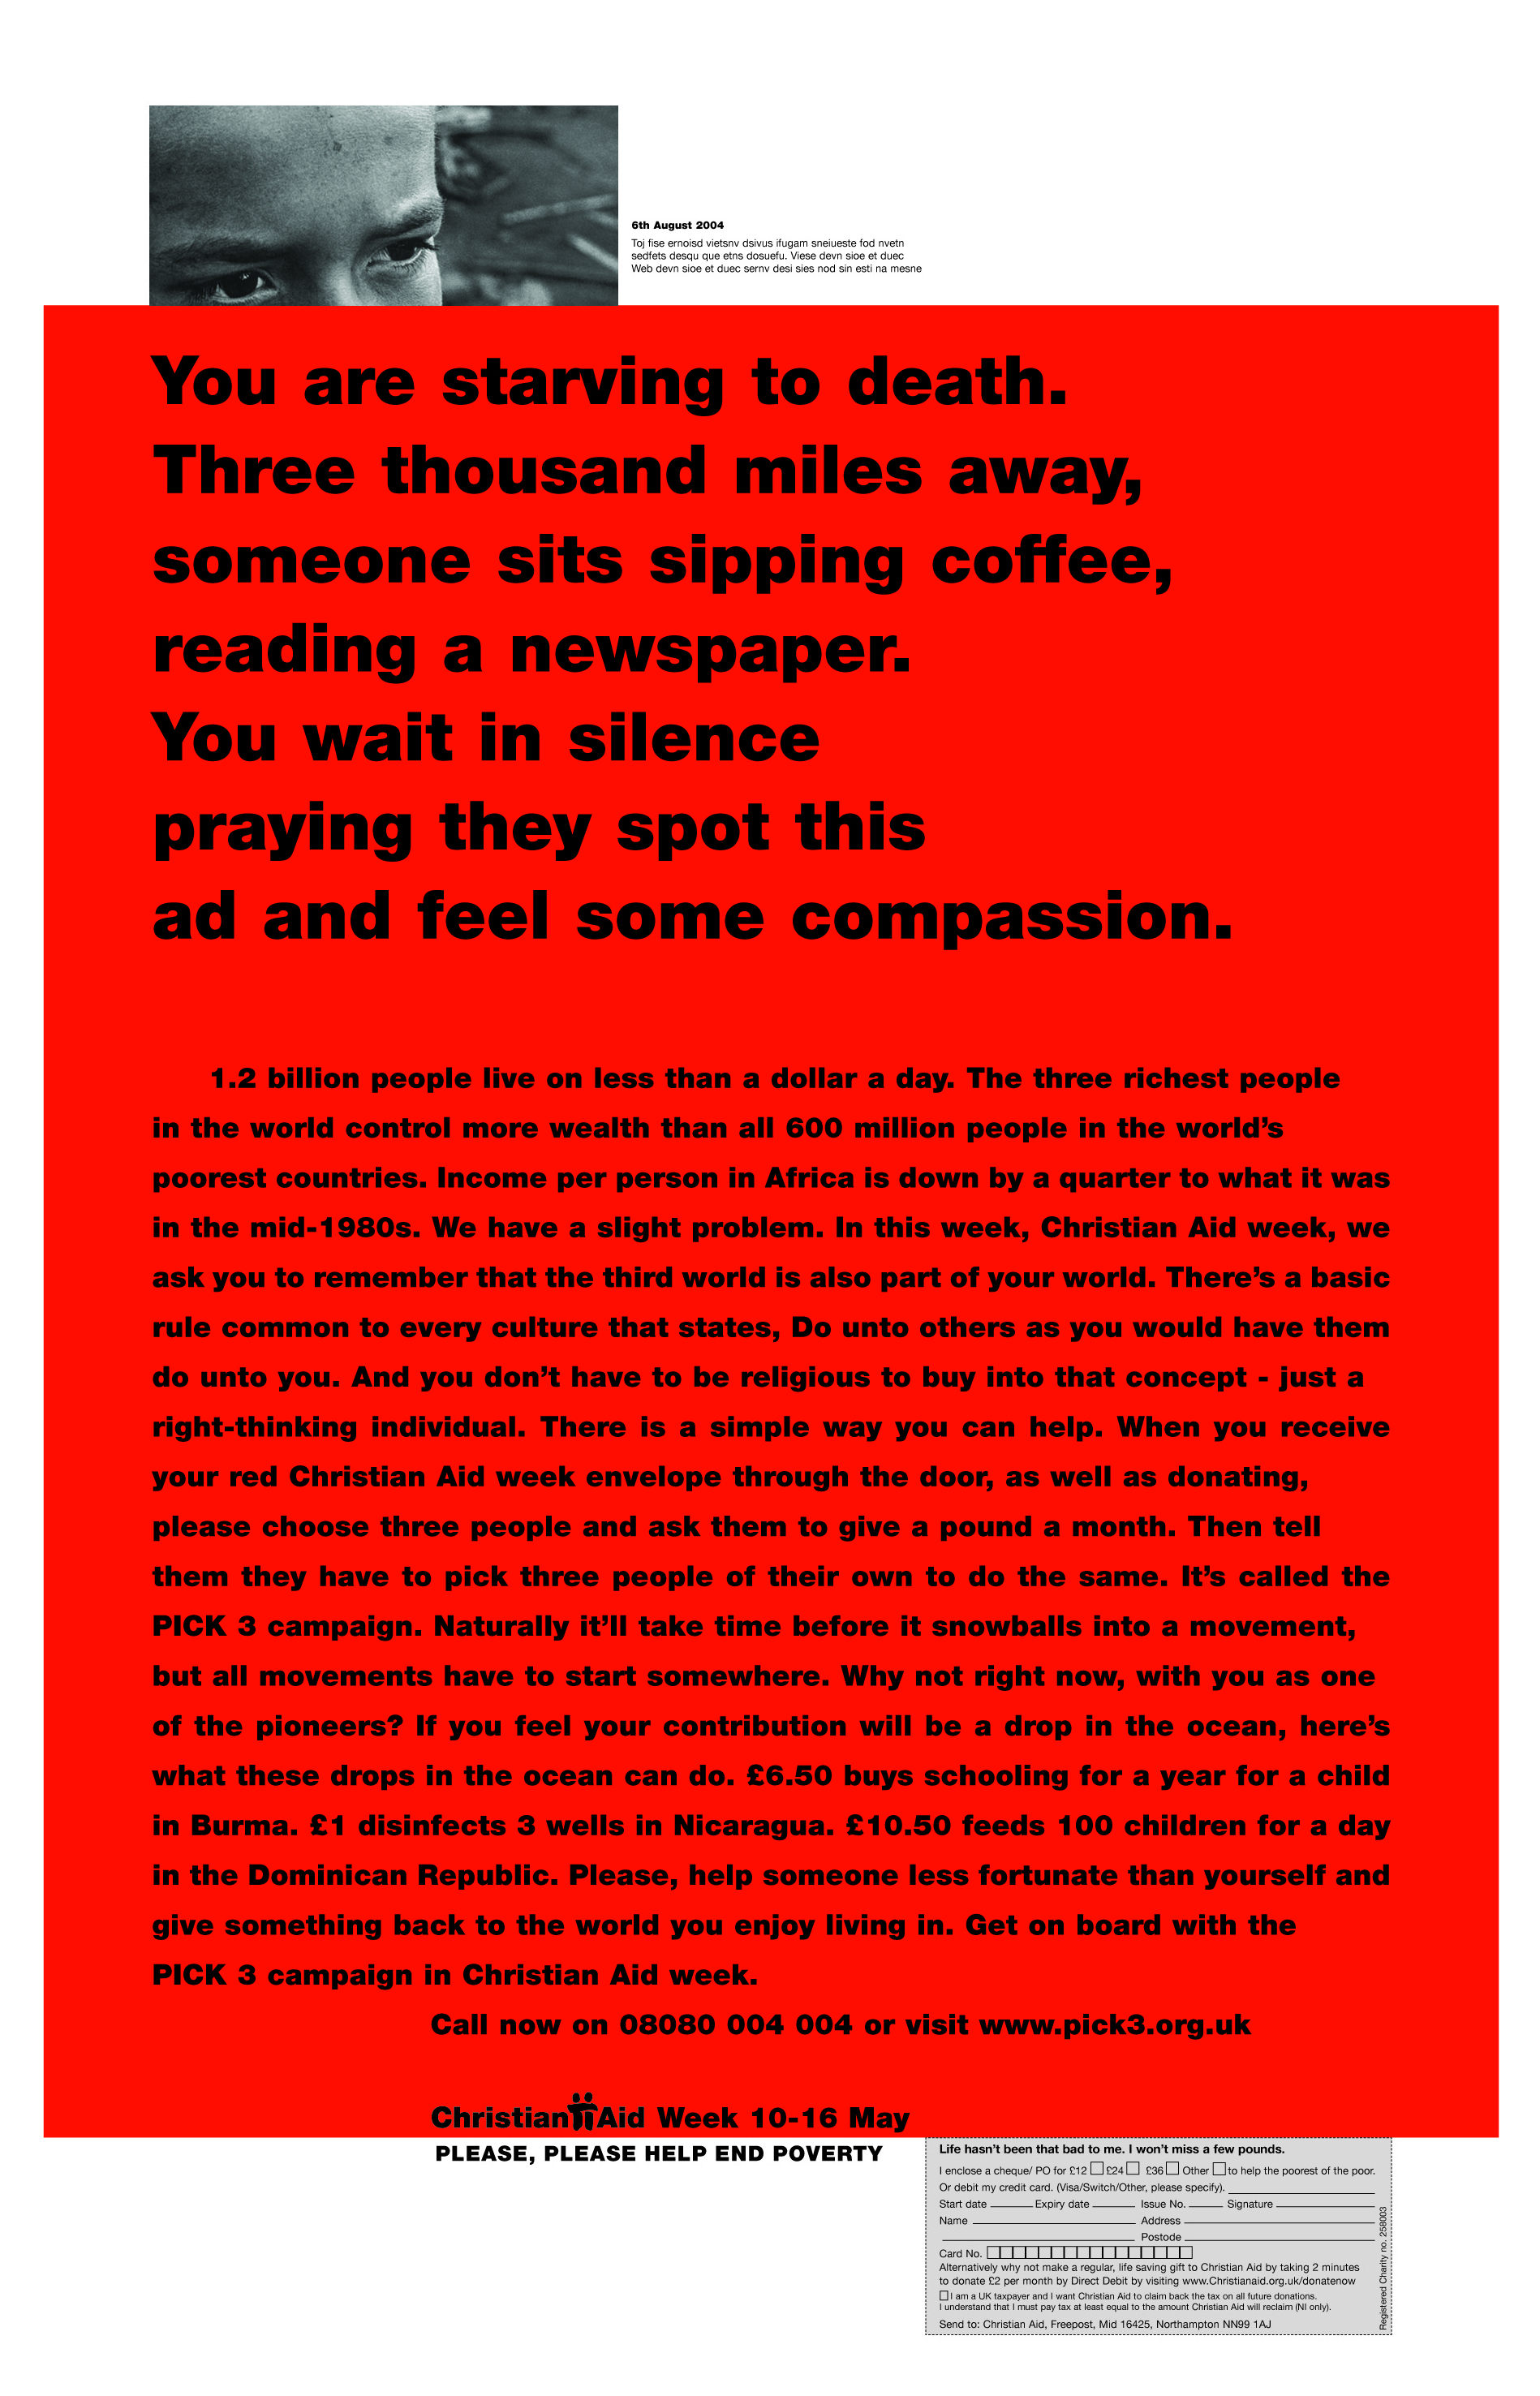 Christian Aid, RED, 'You are', CDD-01.jpg